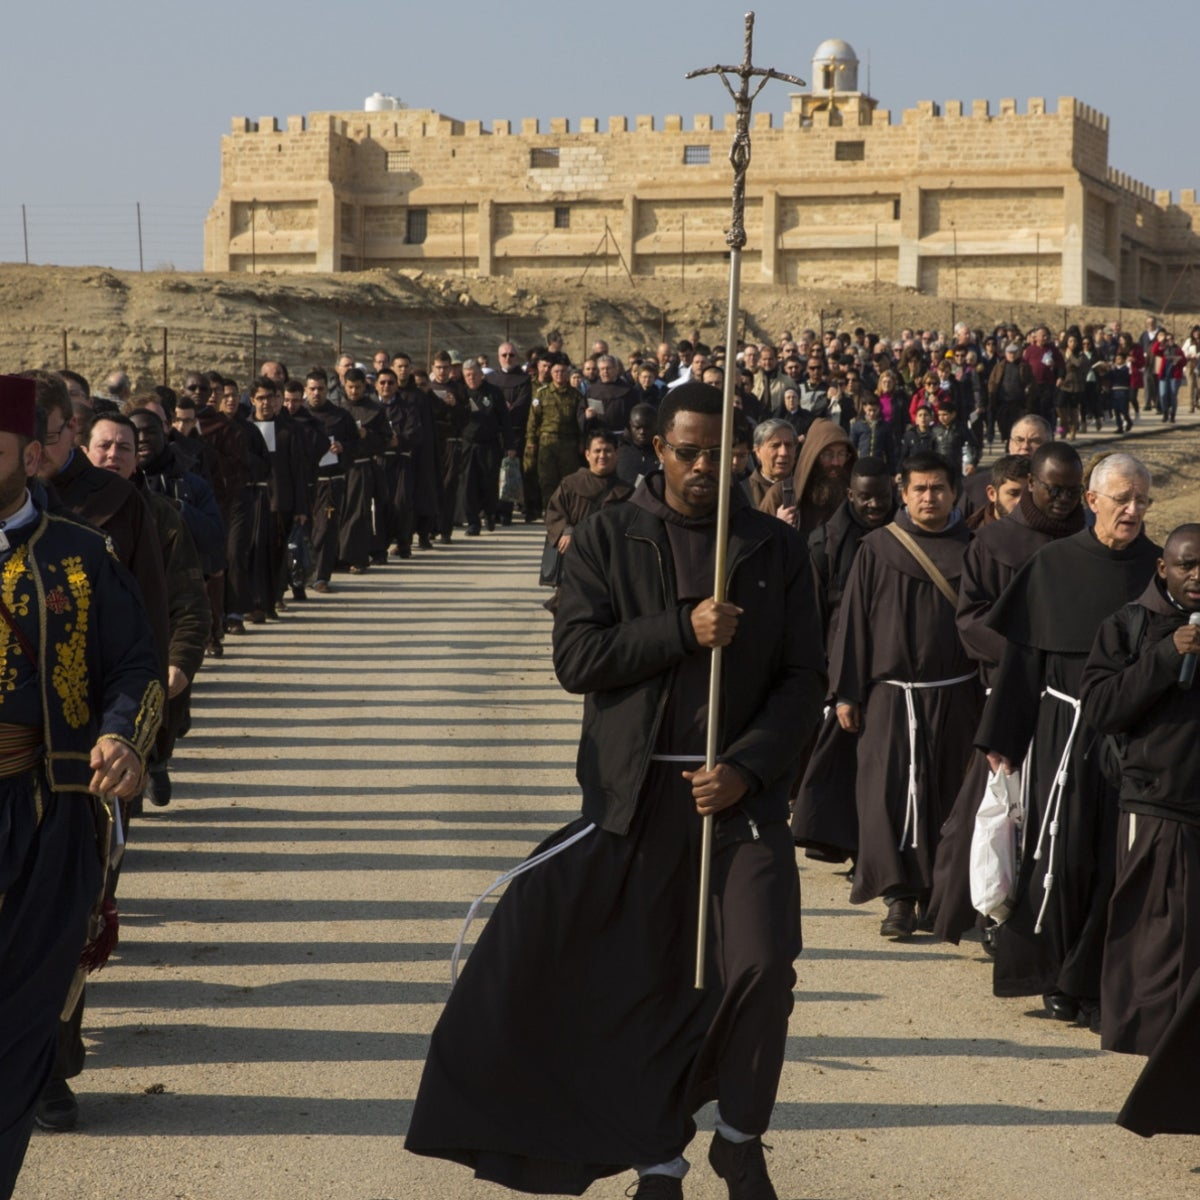 Franciscan pilgrams from Italy, France and Israel make their way from the monastery of John the Baptist to the Jordan River, January 14, 2018.